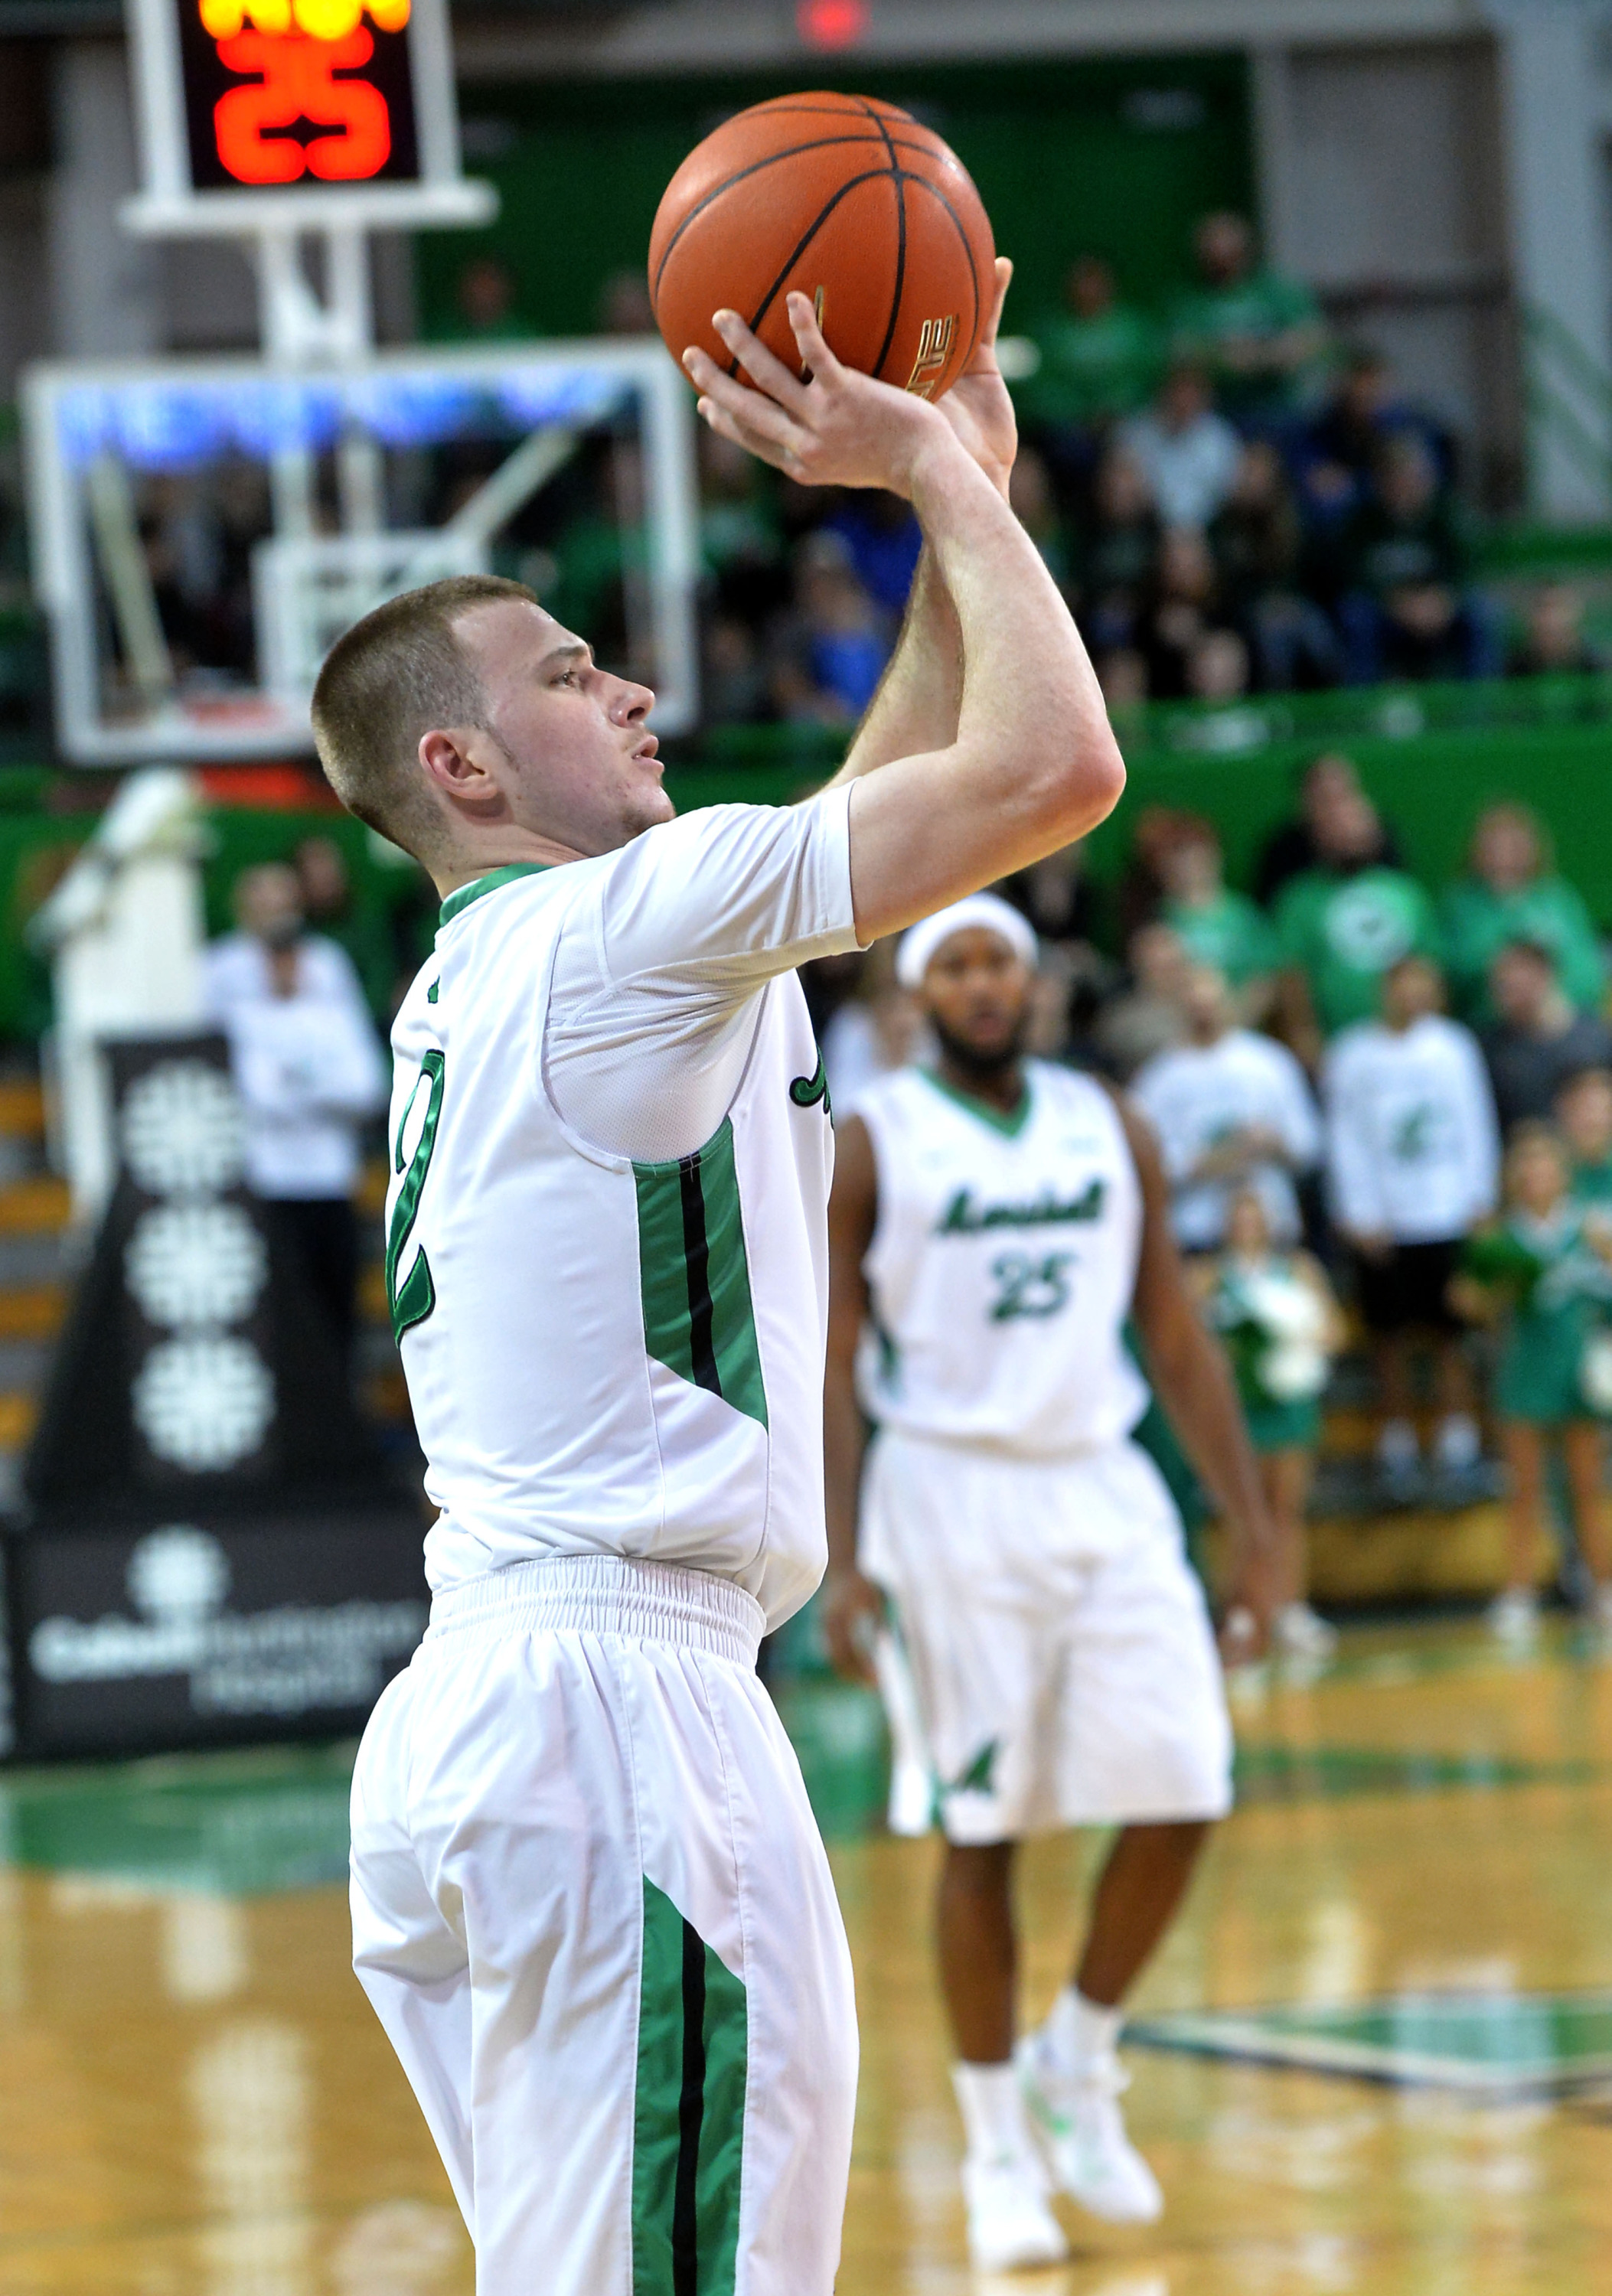 Stevie Browning is riding a nine-game streak of double-figure scoring (15.3 ppg in those games).